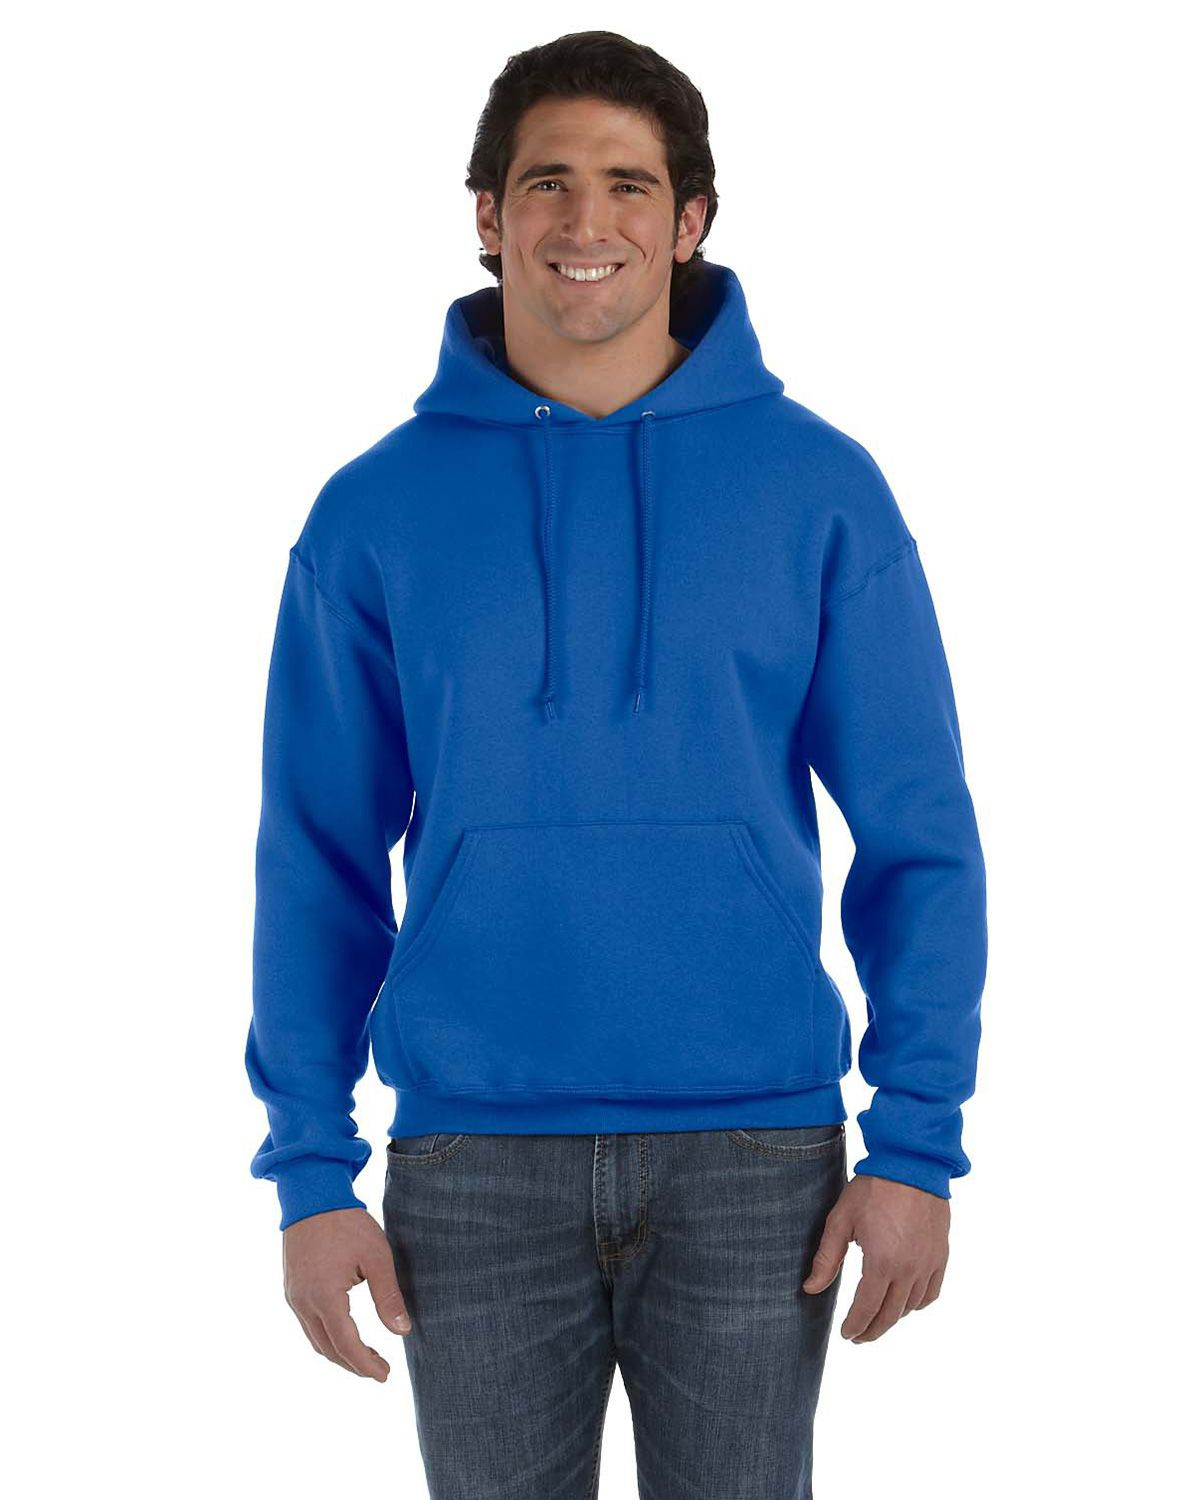 67552bf3e3 Fruit Of The Loom 82130R Mens Supercotton Hooded Pullover